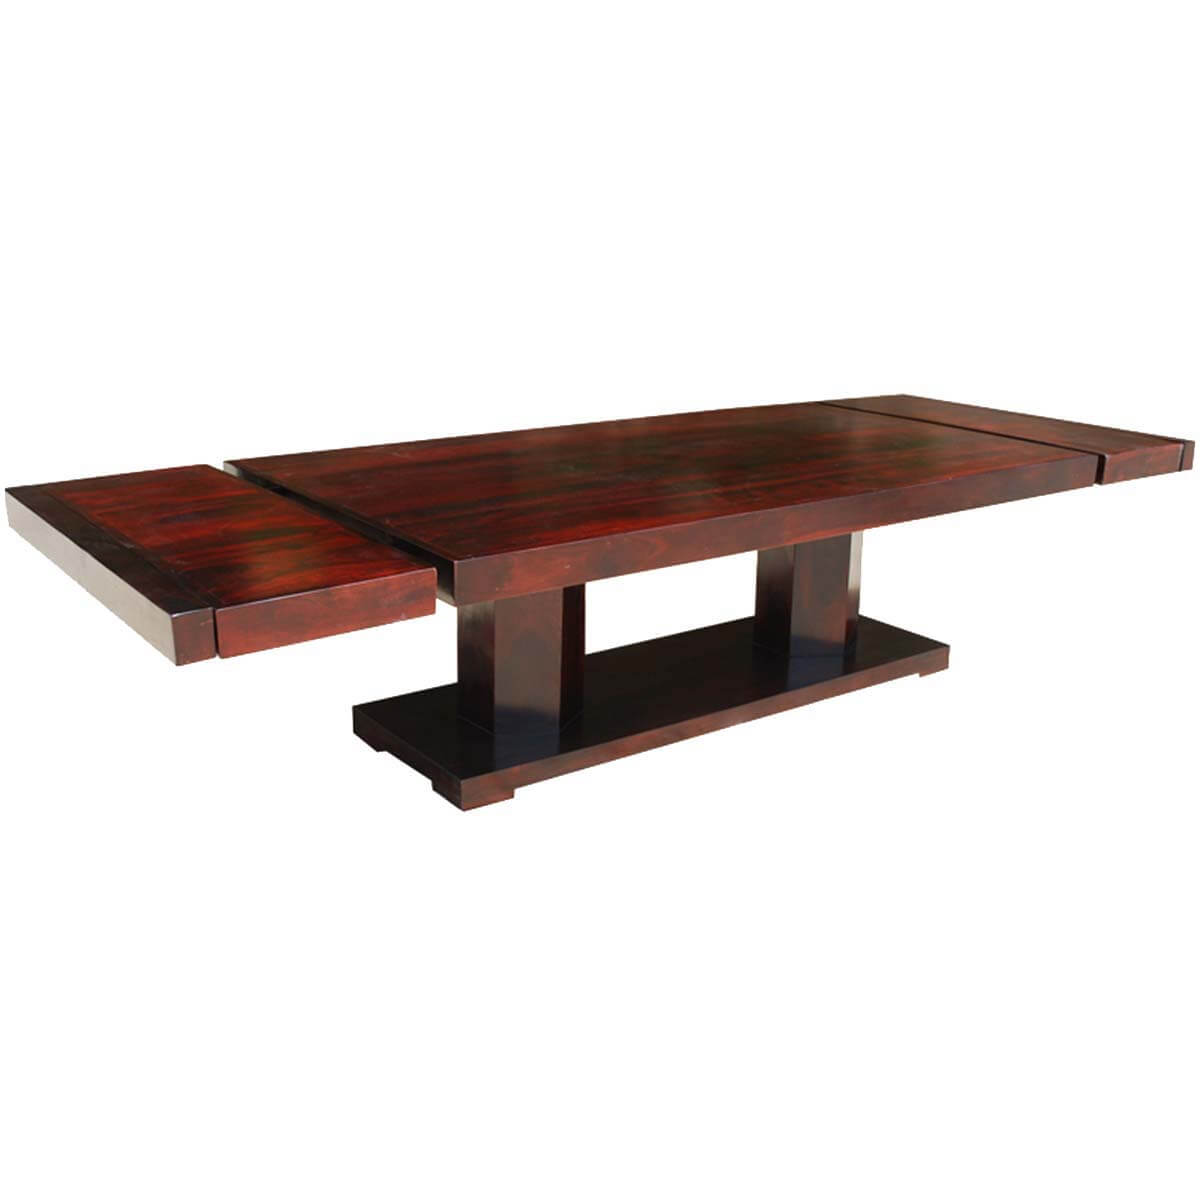 Solid Wood Extension Dining Table Gallery Dining Table Ideas : 3731 from sorahana.info size 1200 x 1200 jpeg 53kB